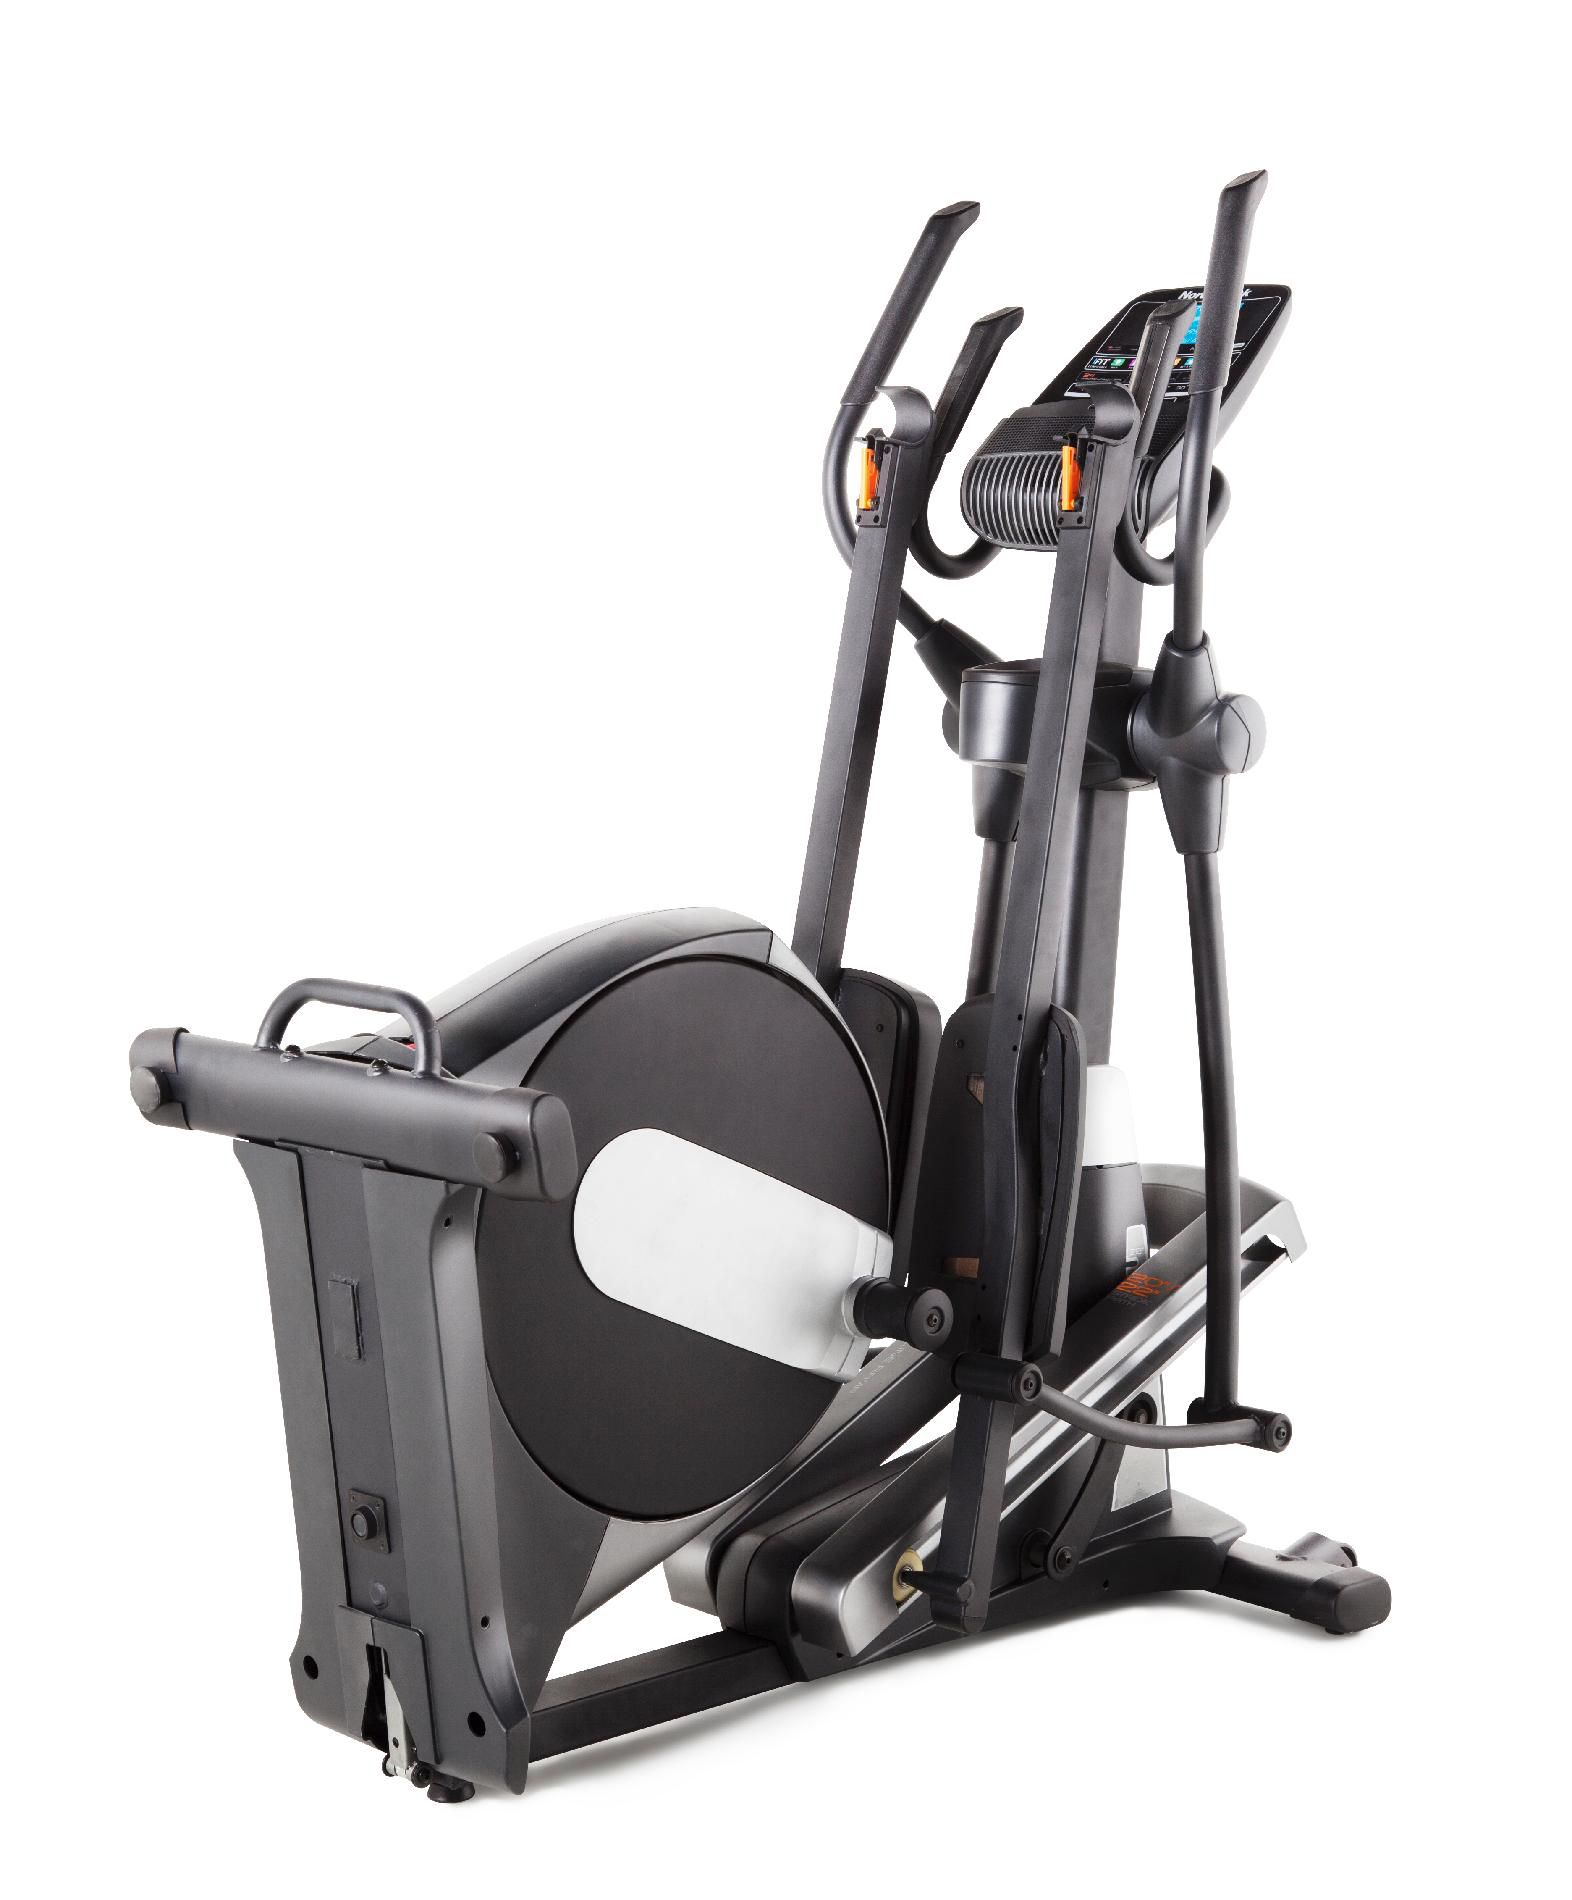 NordicTrack E7.5 Elliptical Trainer